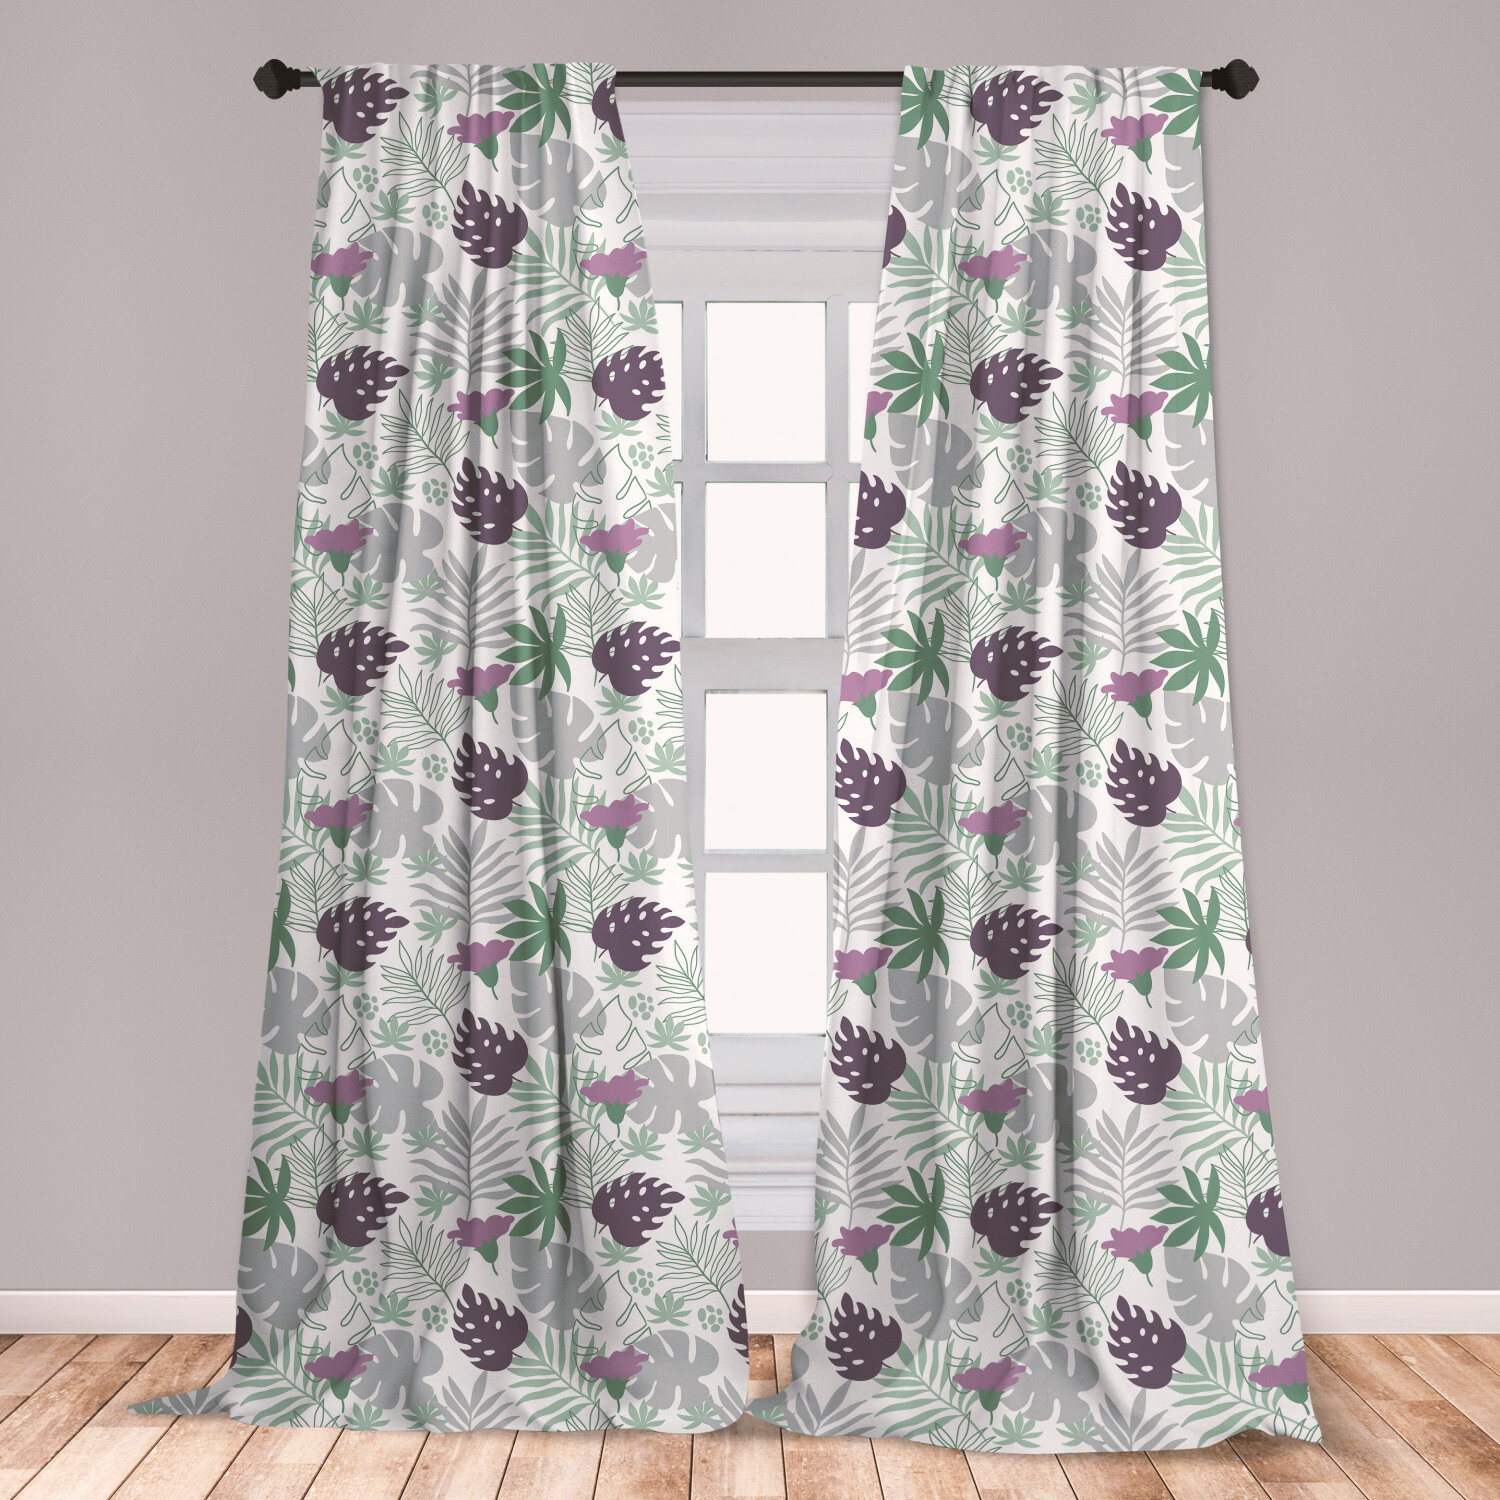 East Urban Home Ambesonne Leaves Floral Room Darkening Rod Pocket Curtain Panels Wayfair